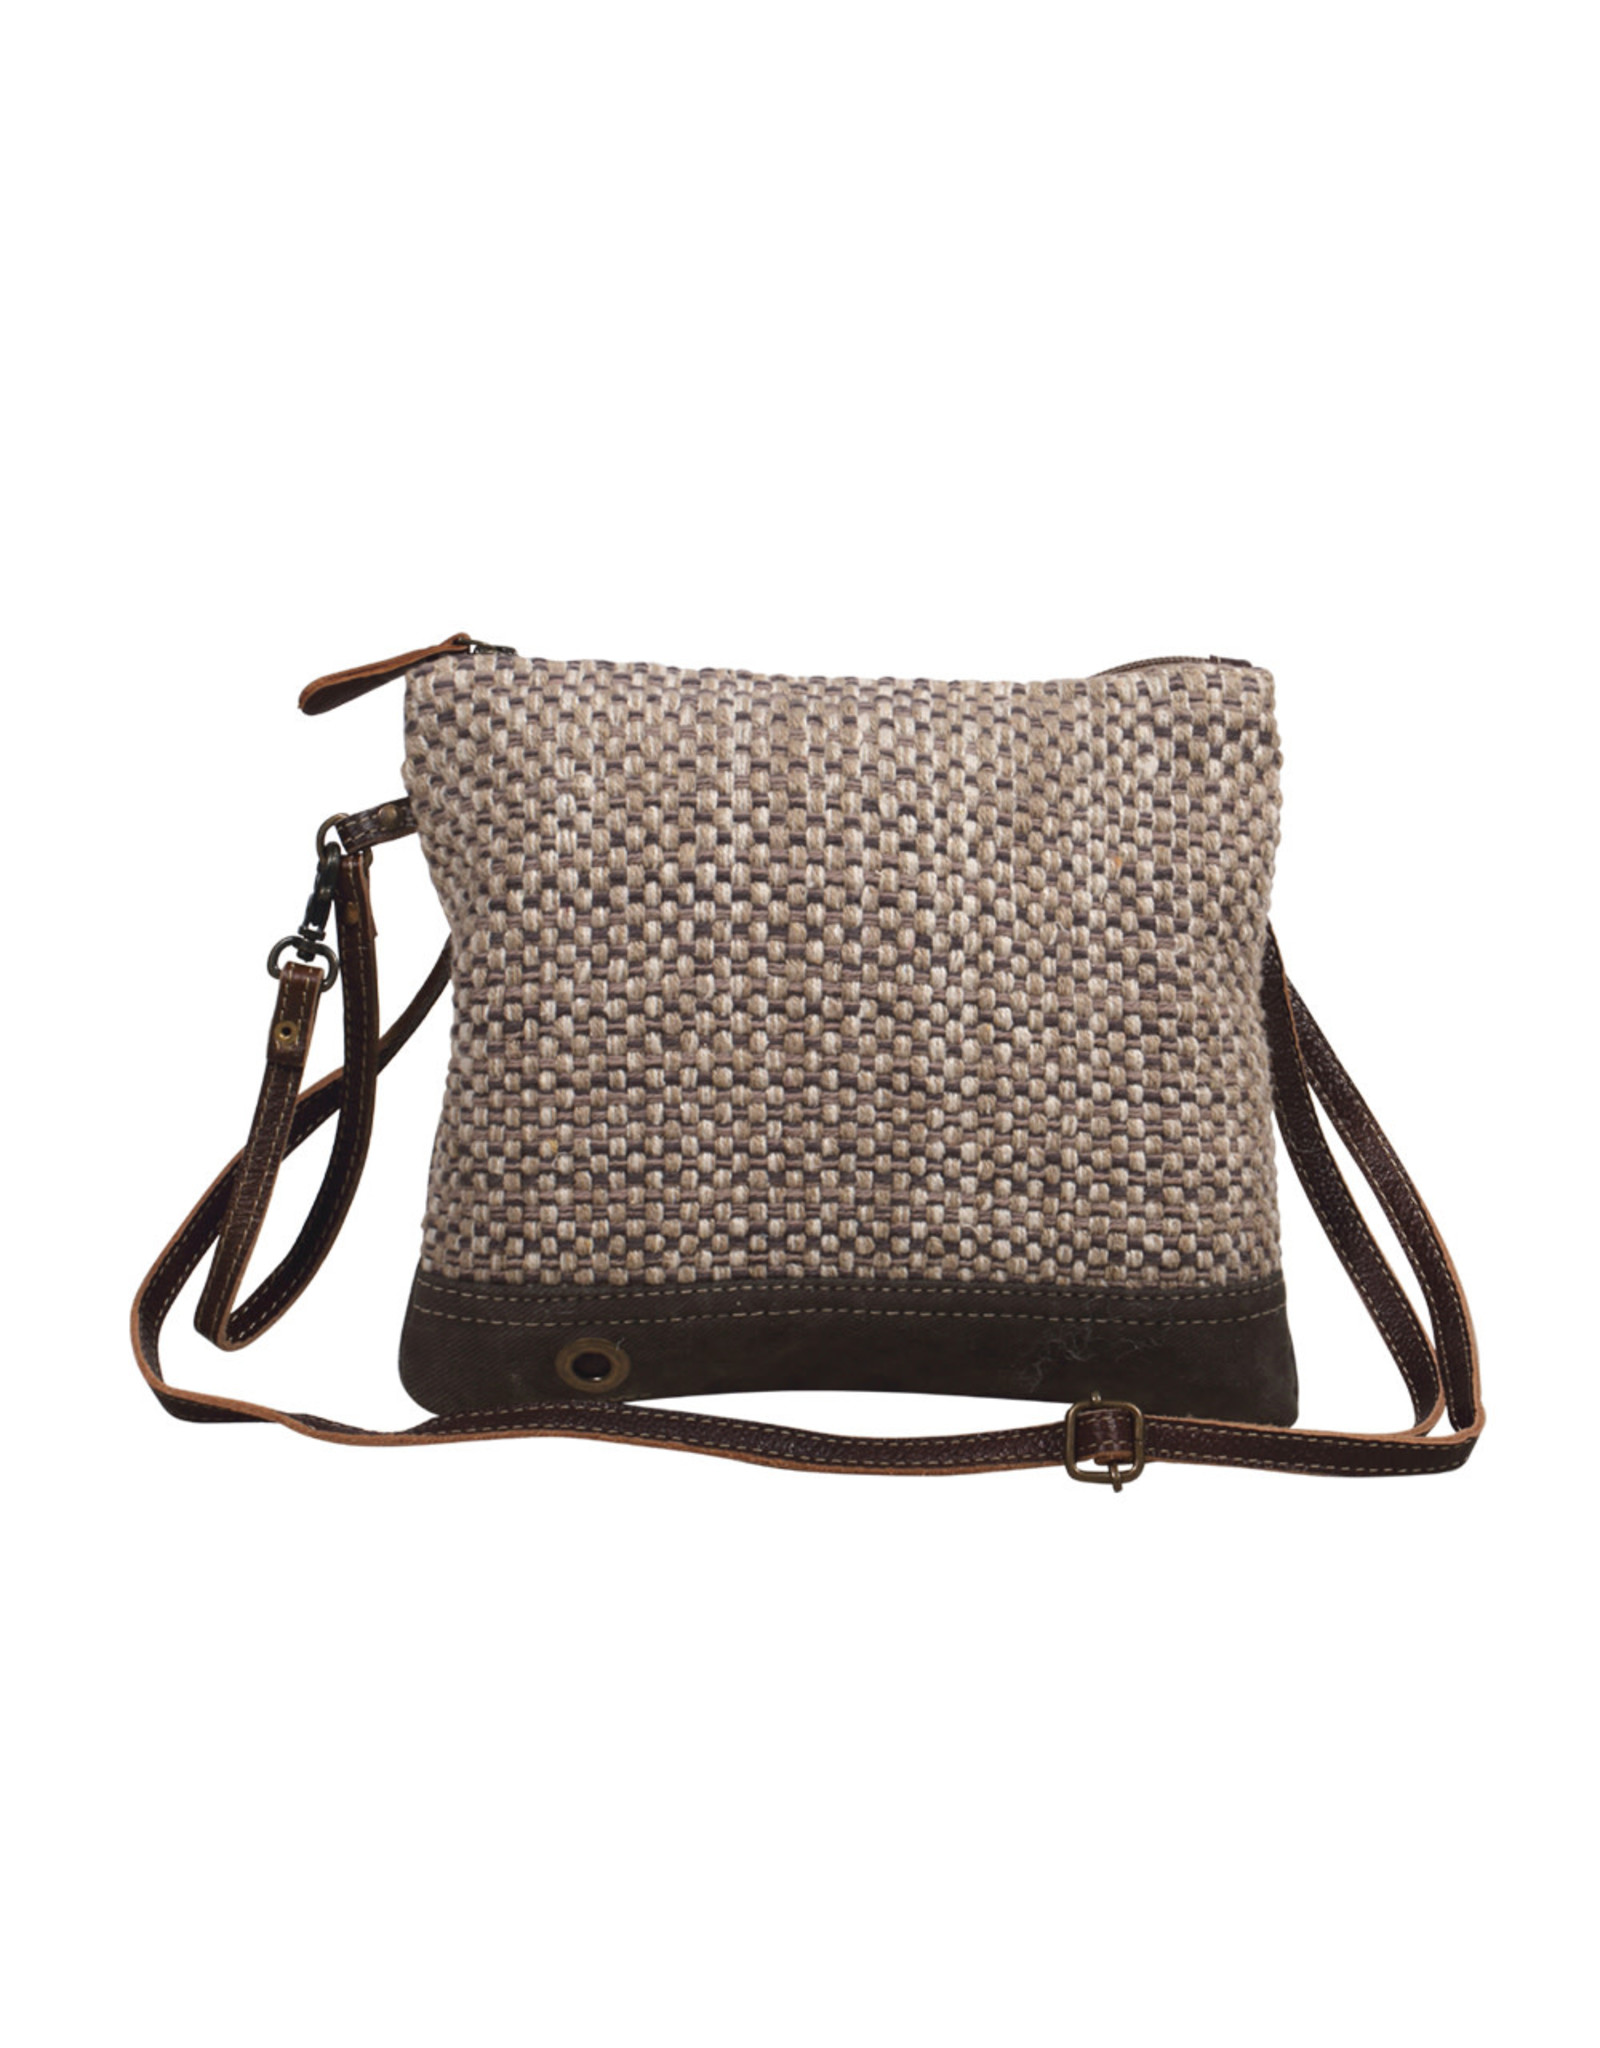 Myra Bags S-2079 Liliput Small & Crossbody Bag